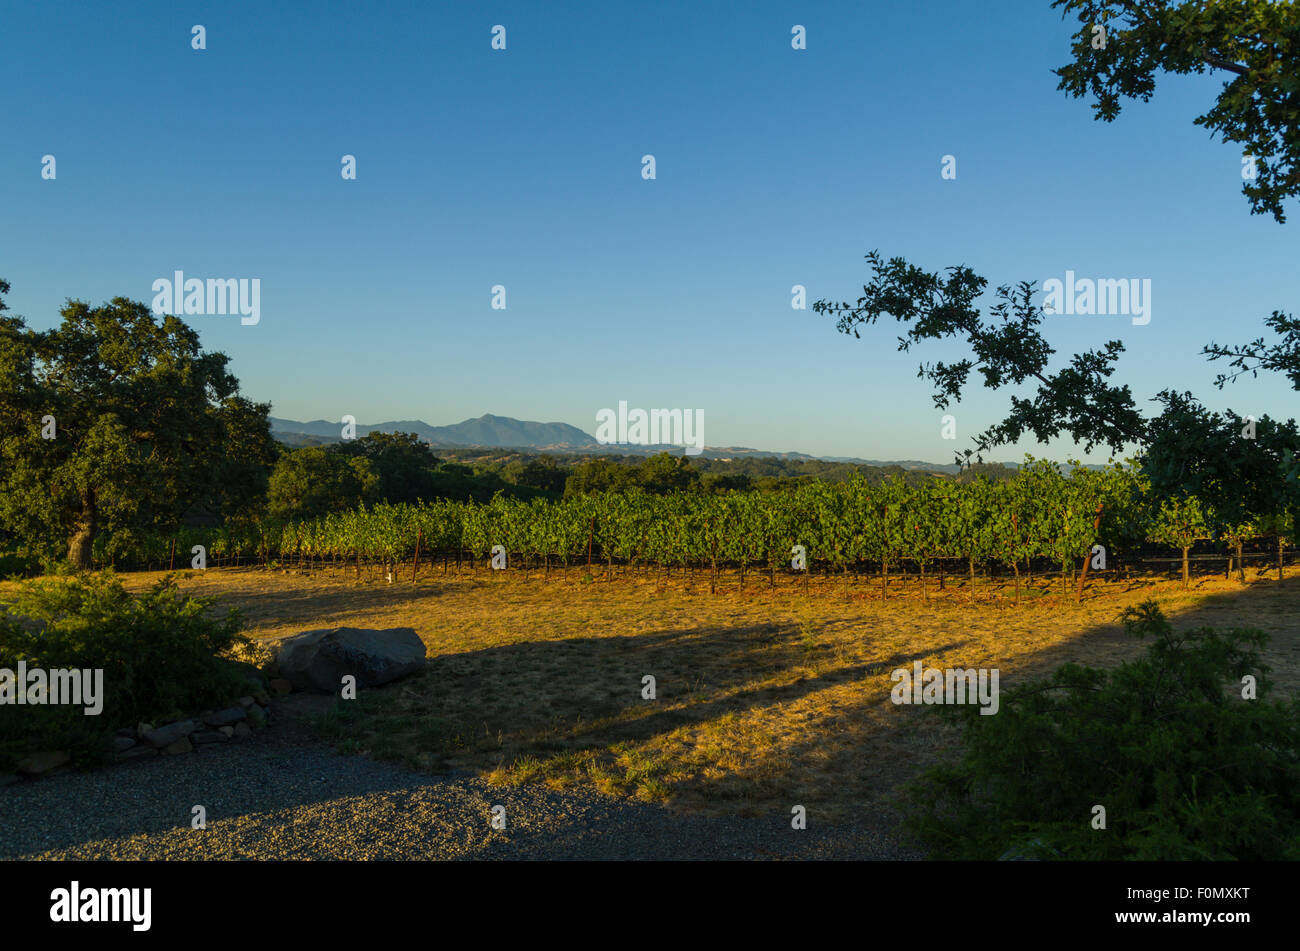 Late evening at a Sonoma vineyard - Stock Image